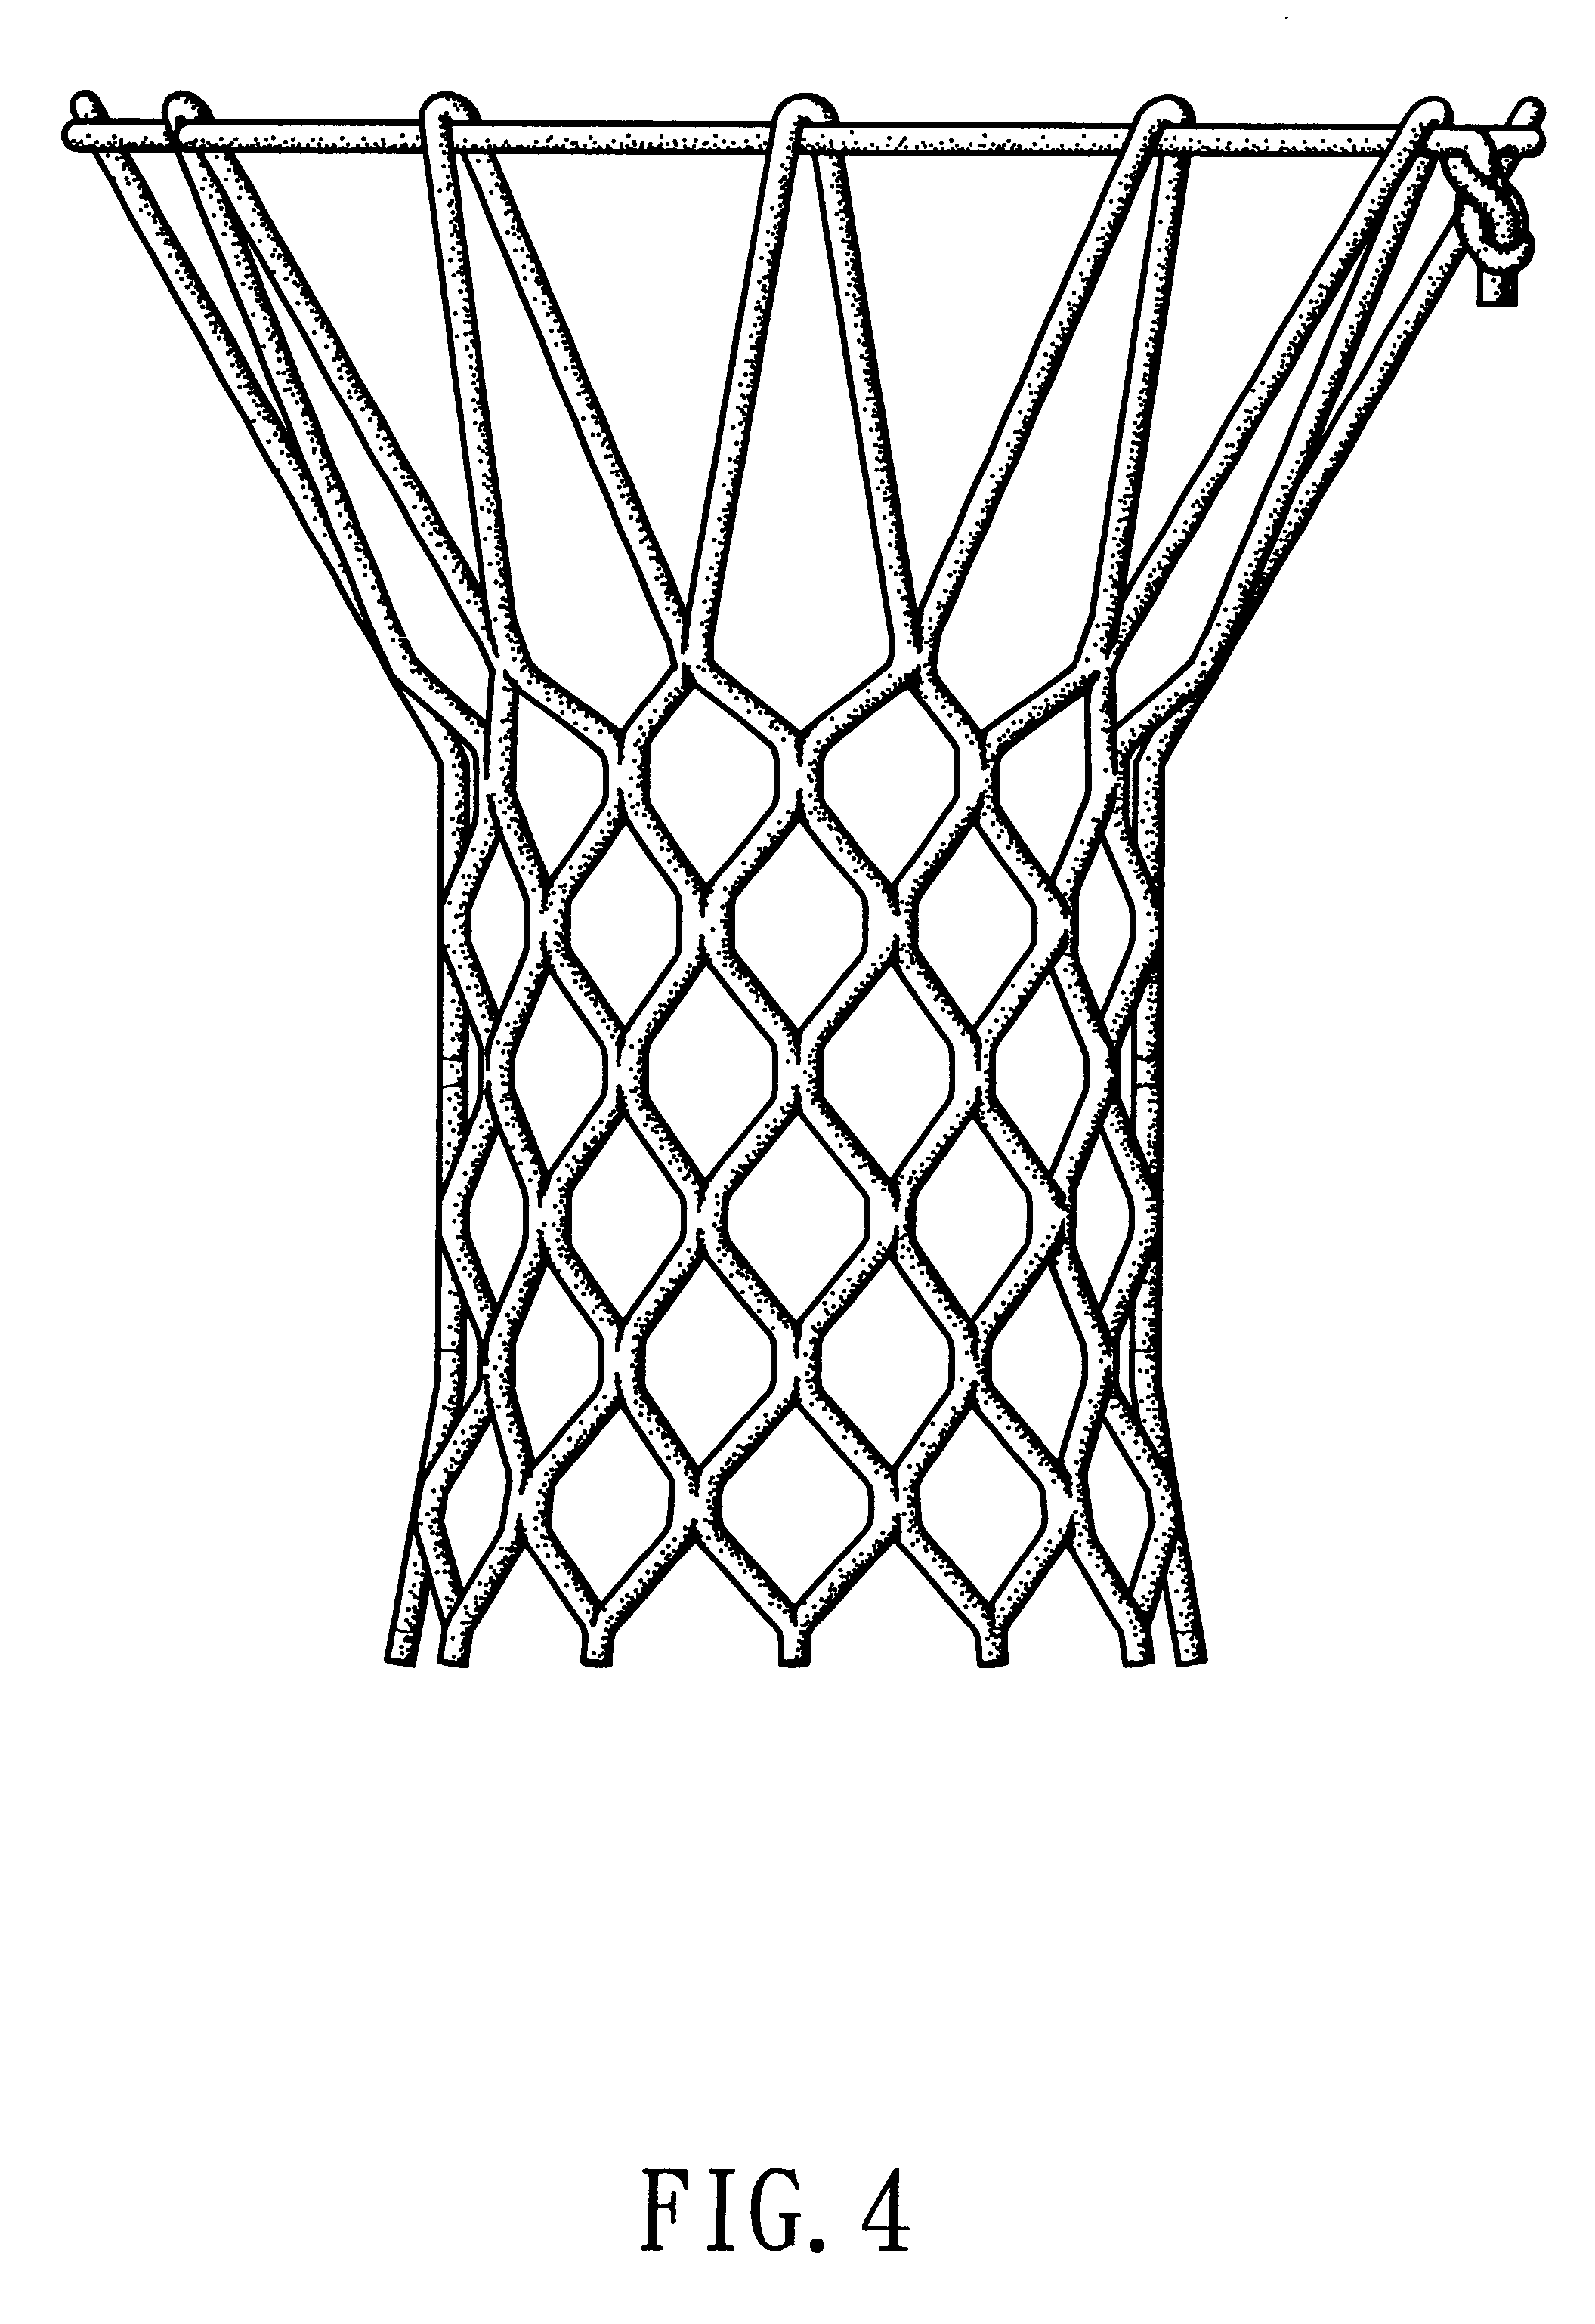 basketball hoop drawing at getdrawings com free for personal use